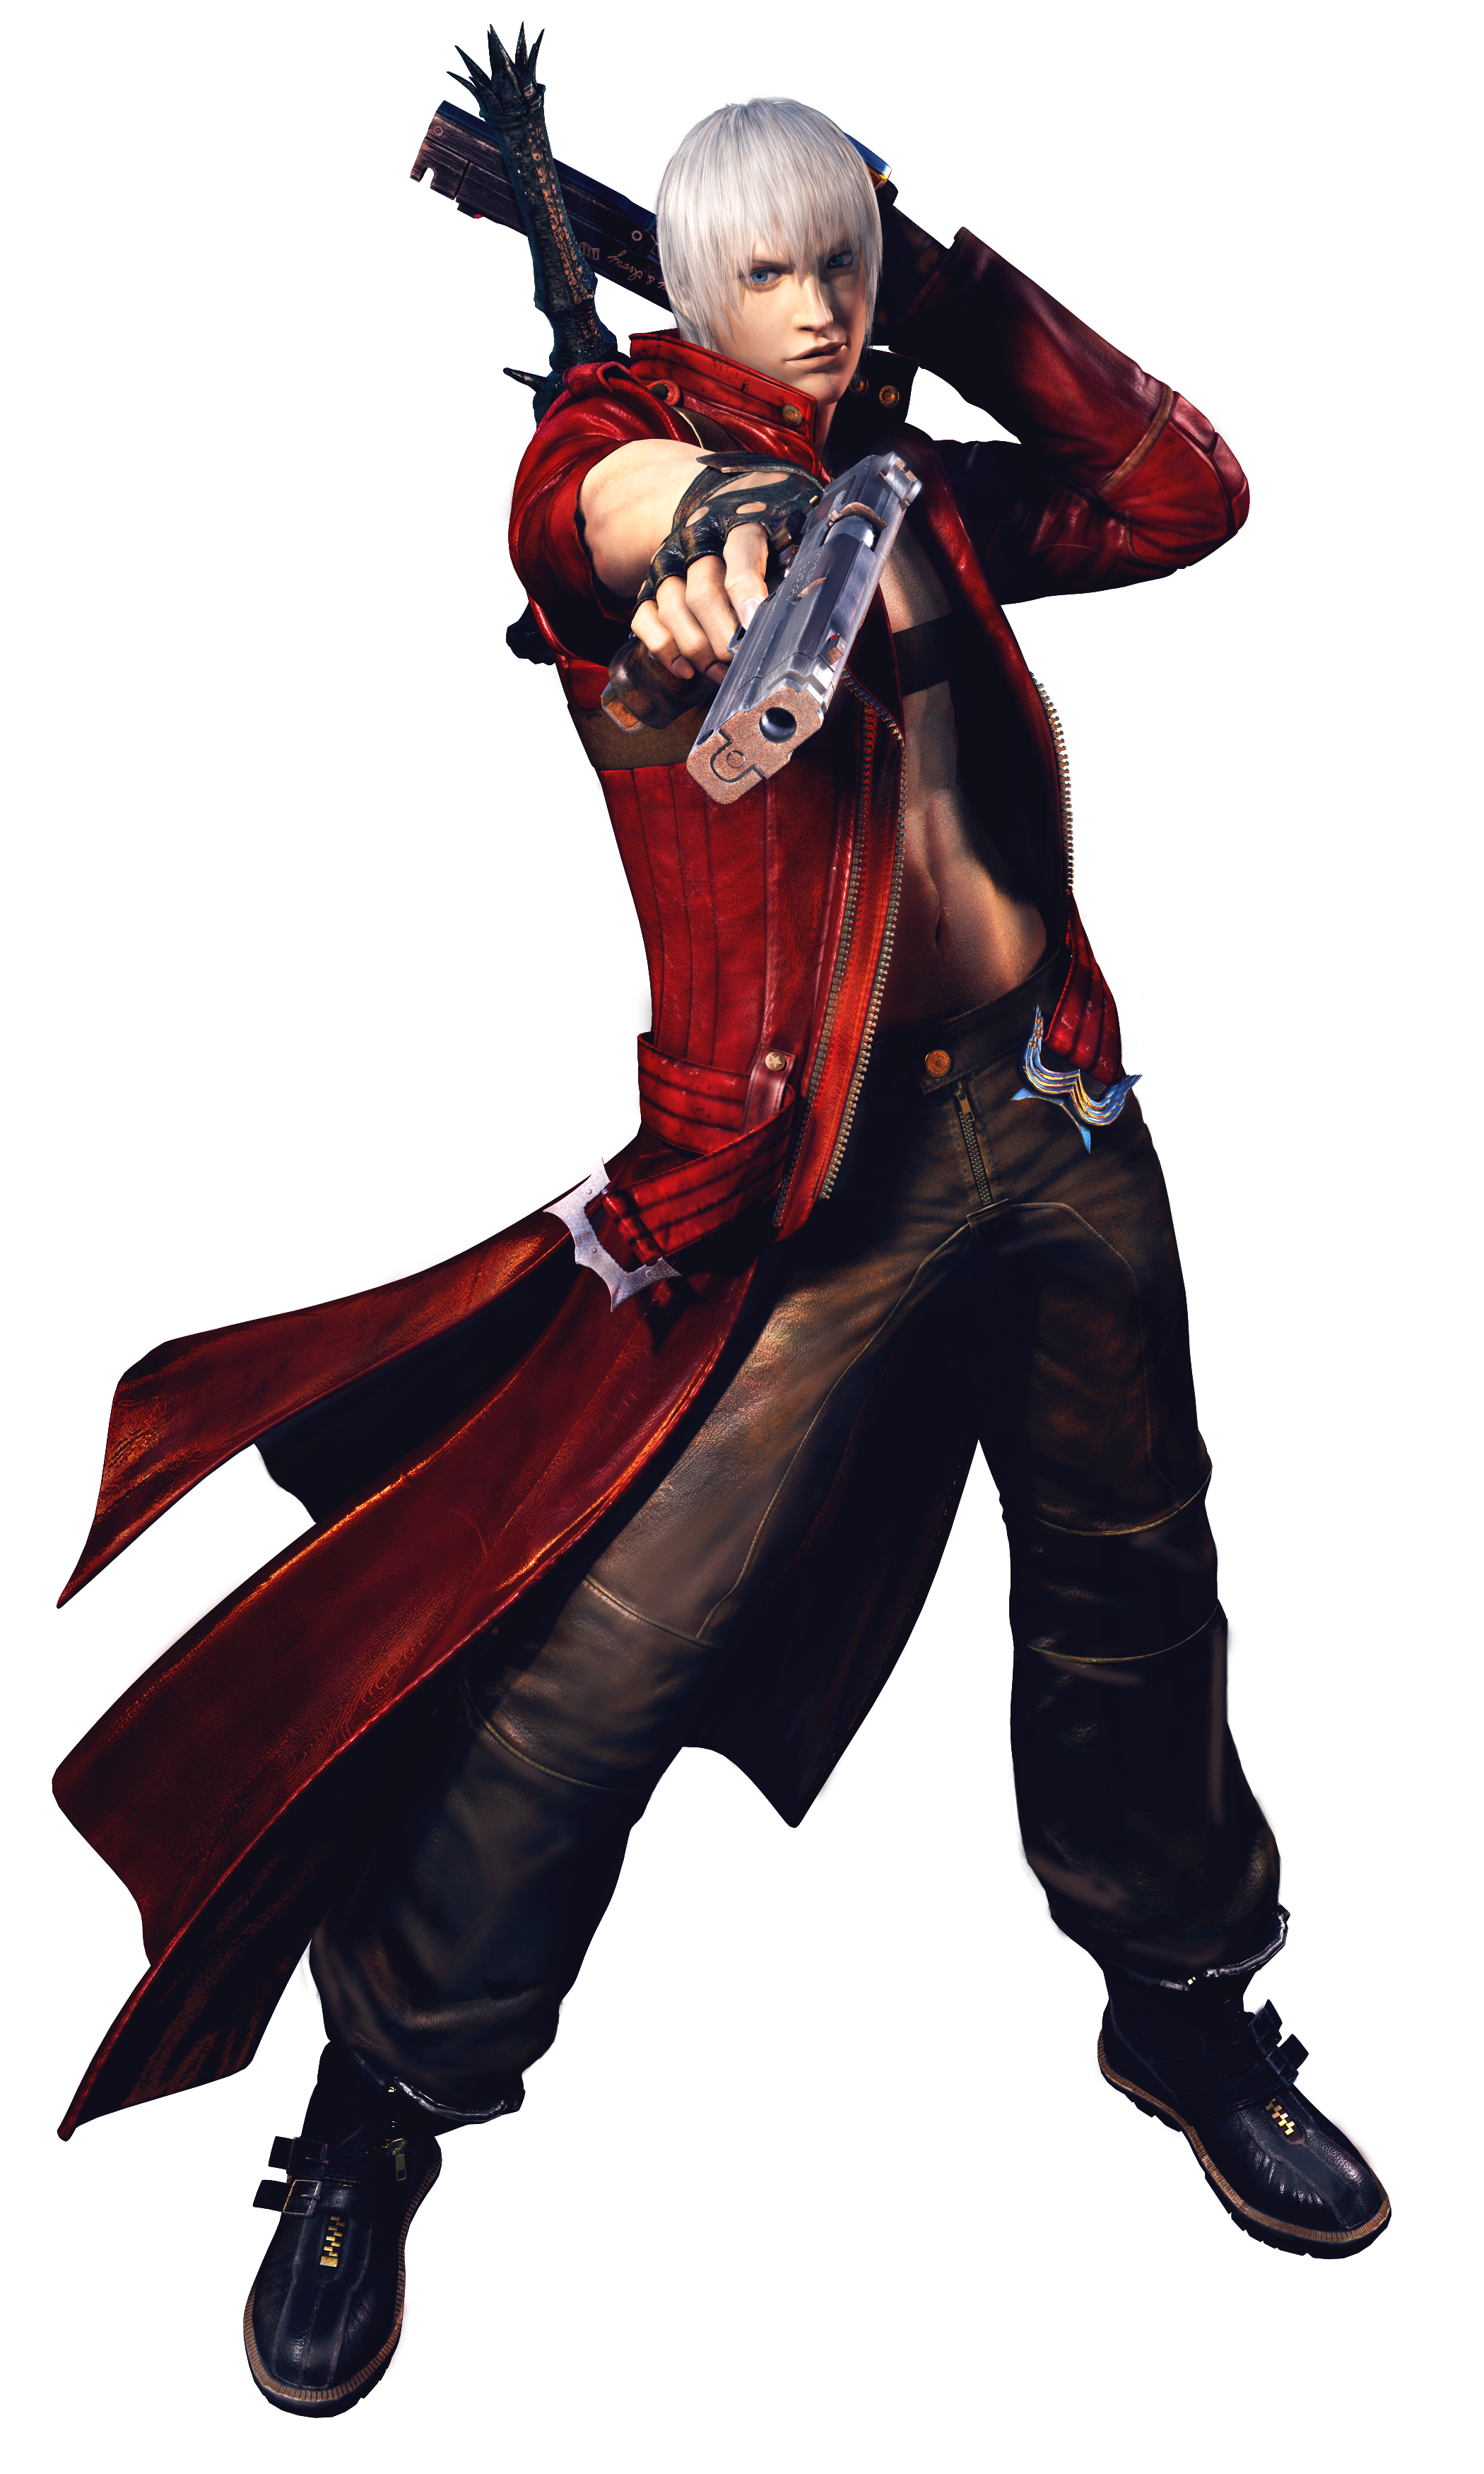 Devil may cry 4 dante png. Awesome pin up artworks